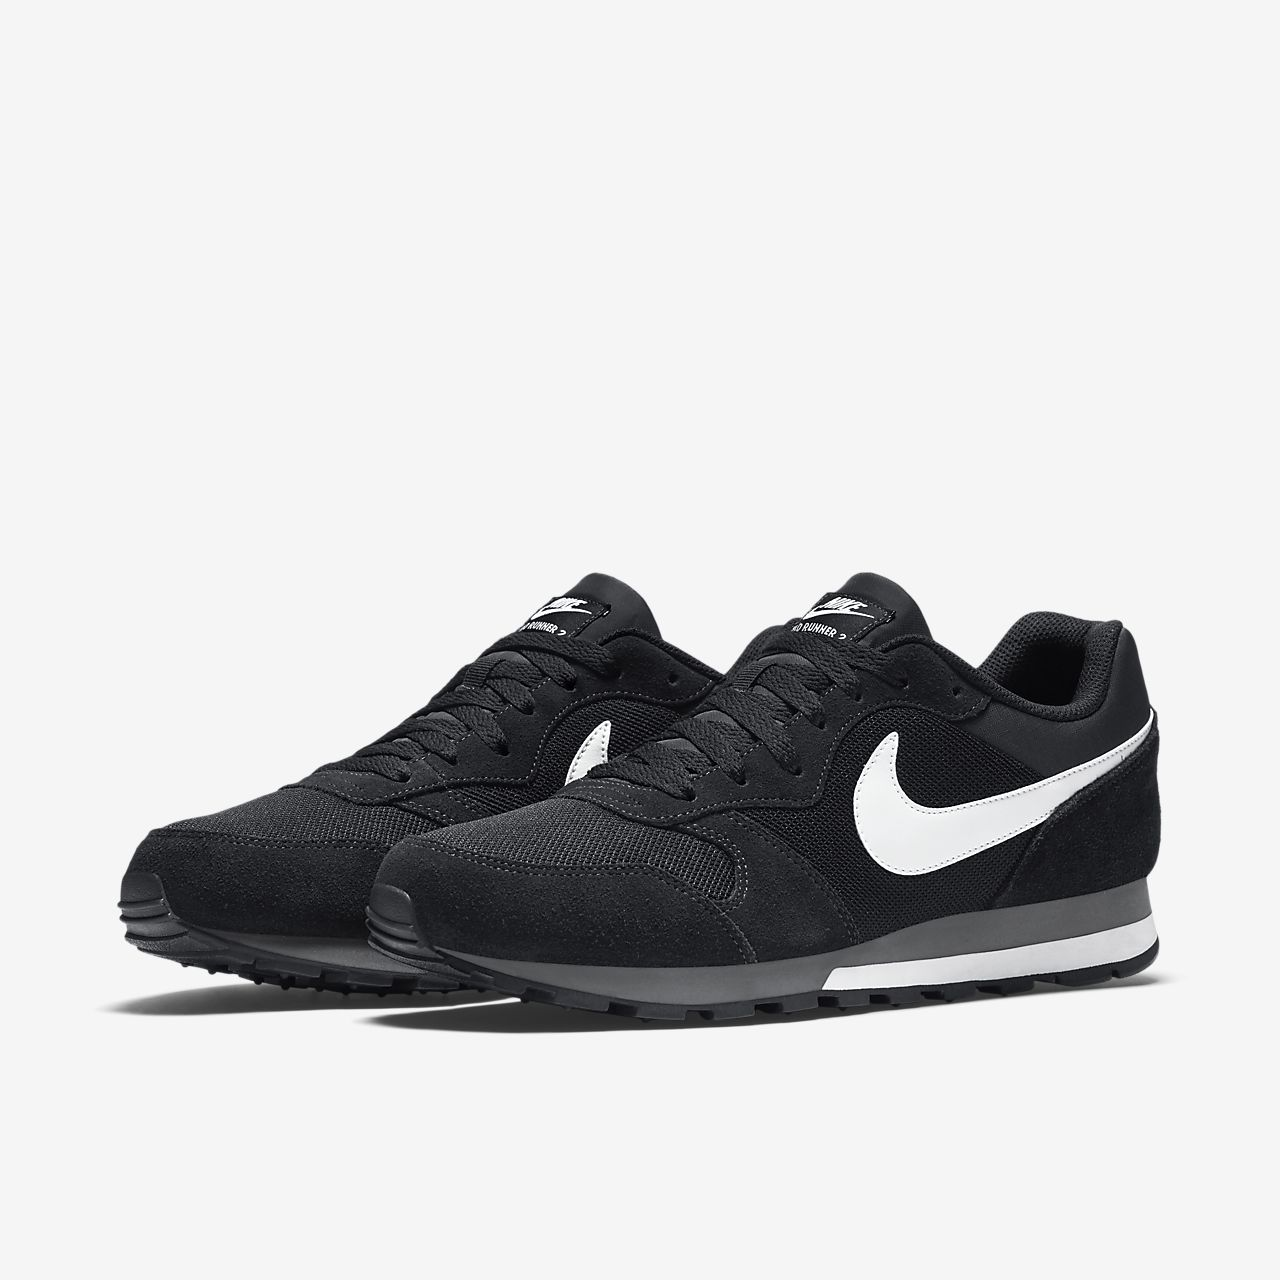 d663b39000905e Nike MD Runner 2 Men s Shoe. Nike.com GB